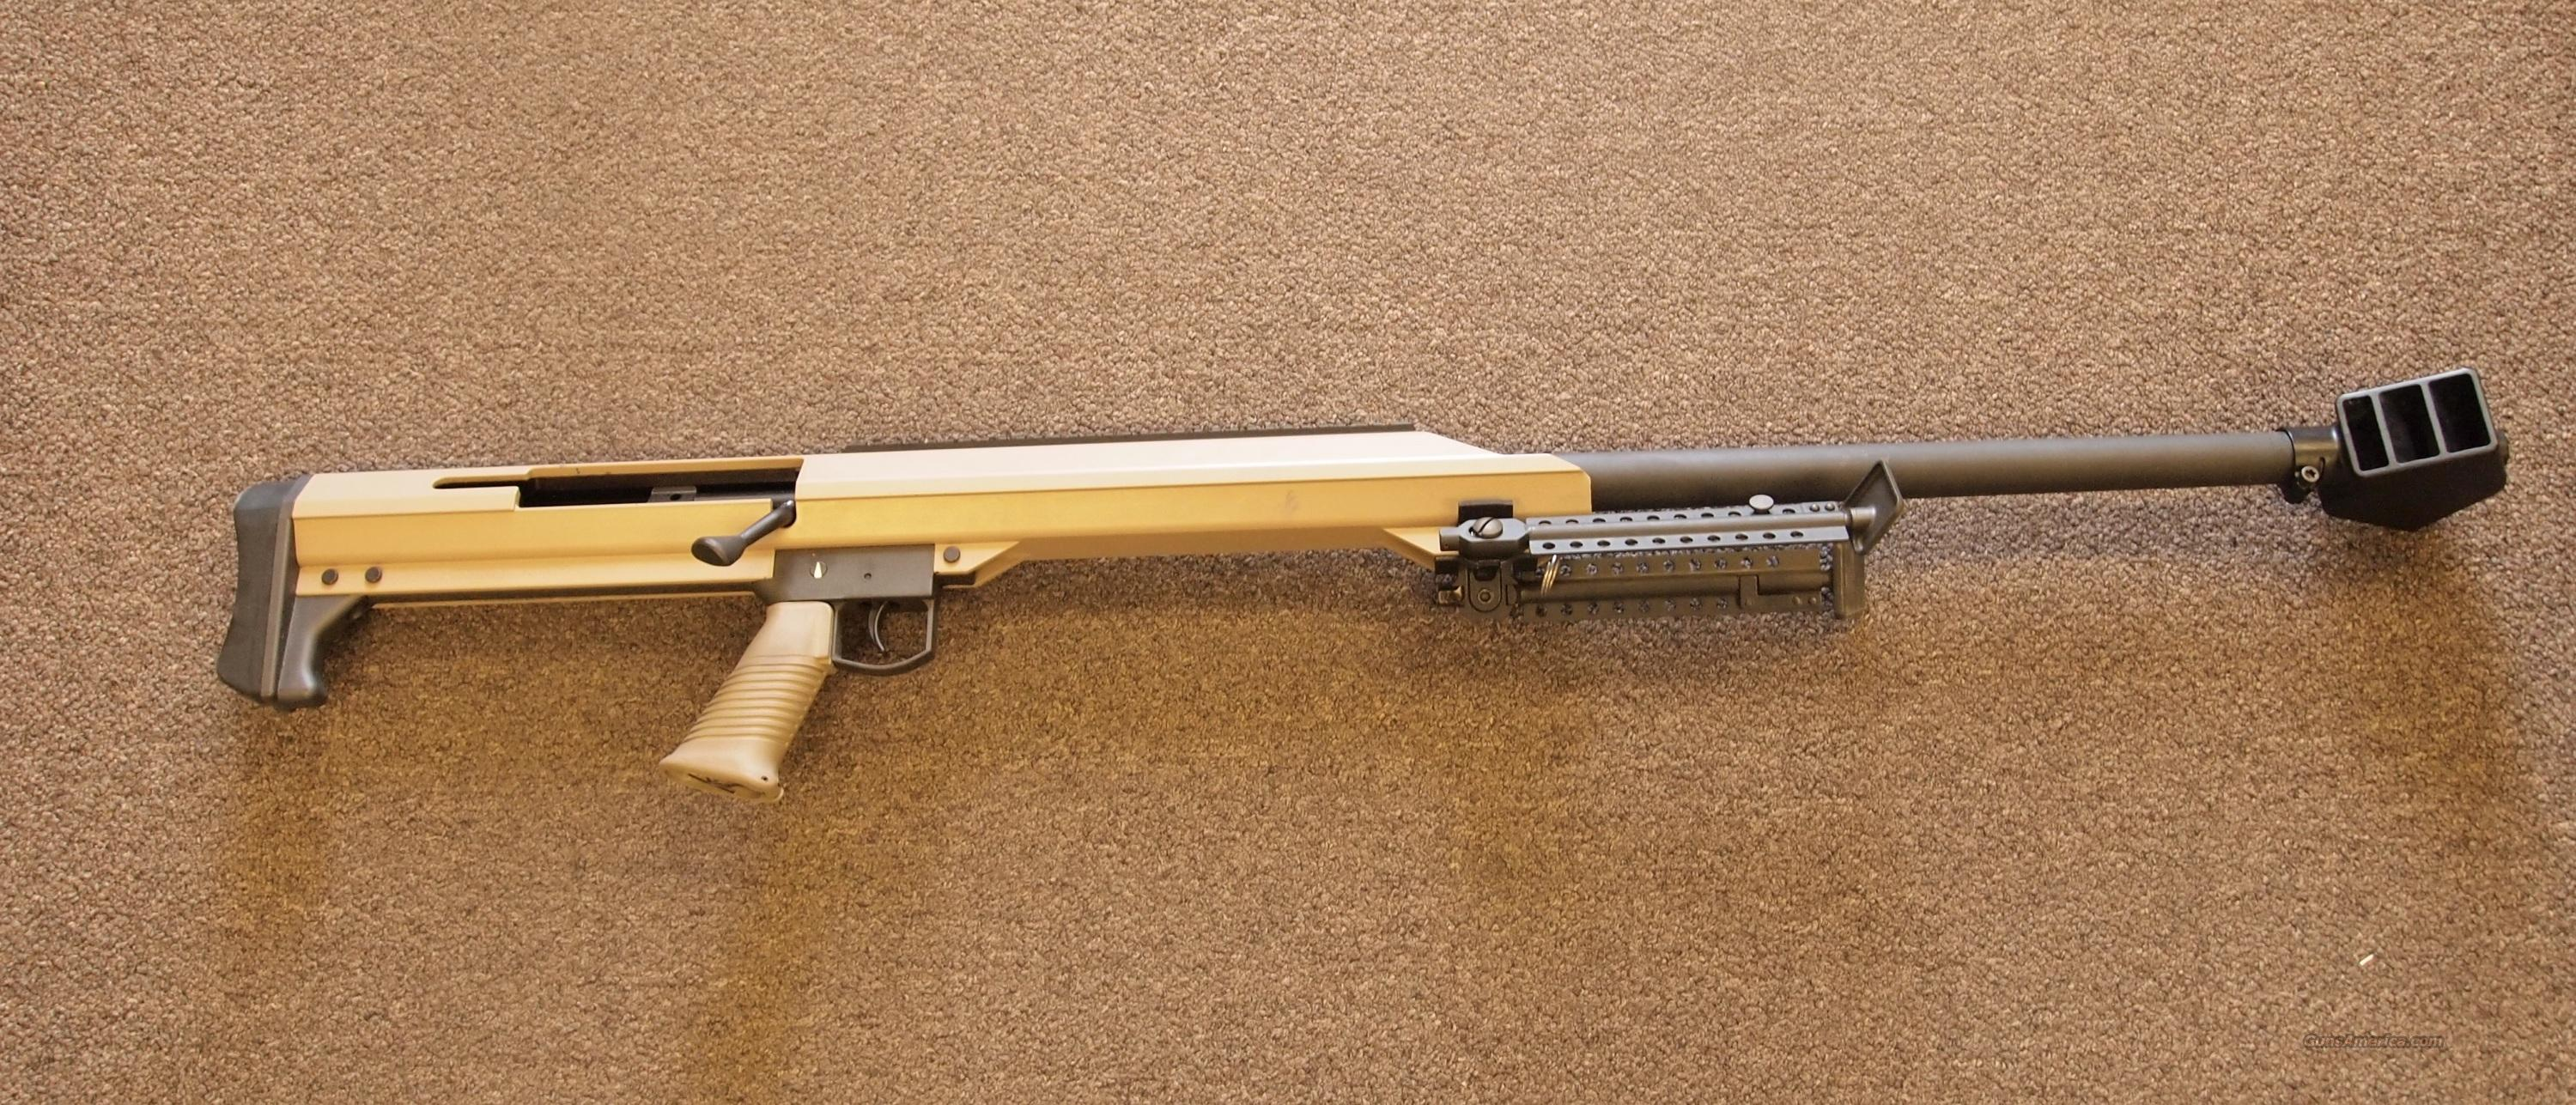 Barrett M99 .416 Barrett Tan  Guns > Rifles > Barrett Rifles